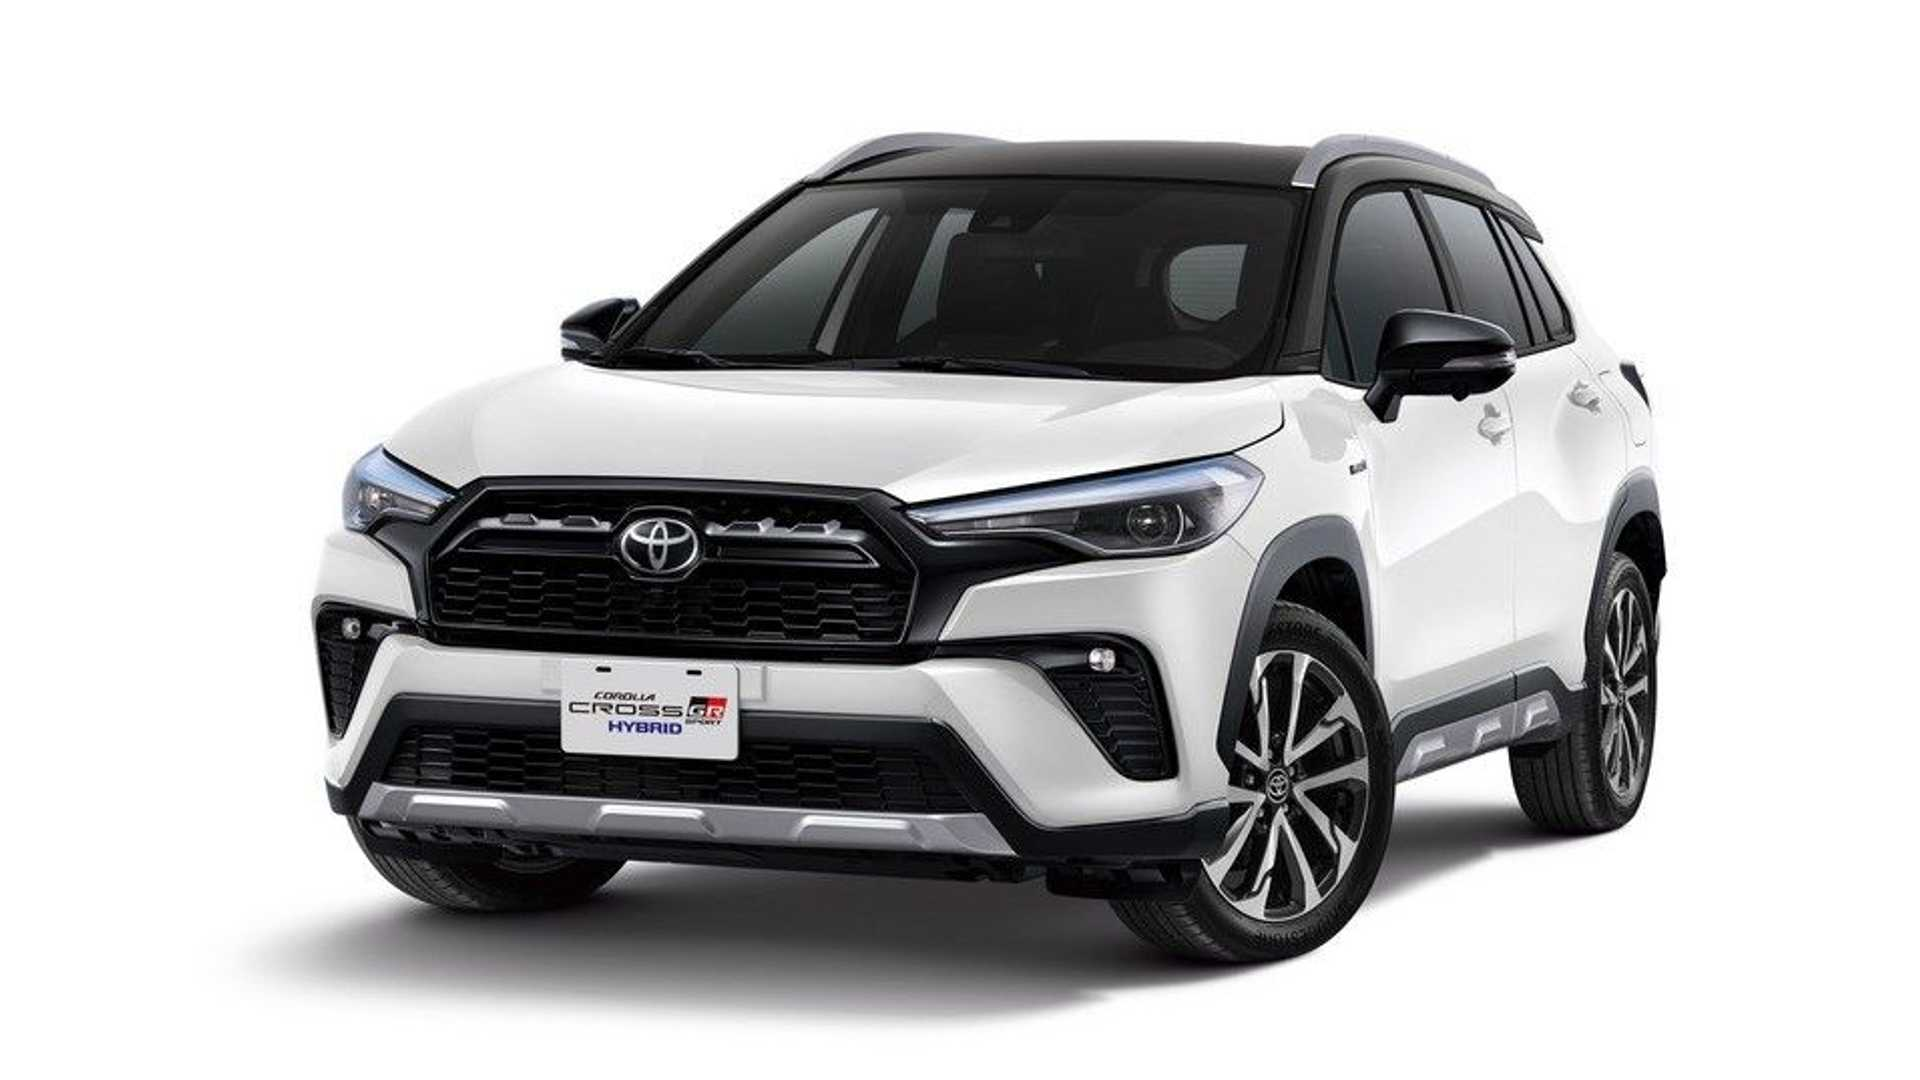 As we know, Toyota plans to make GR Sport versions of its entire lineup. The Fortuner and the Hilux are some of the already existing examples, and now, Corolla Cross joins the list, too.